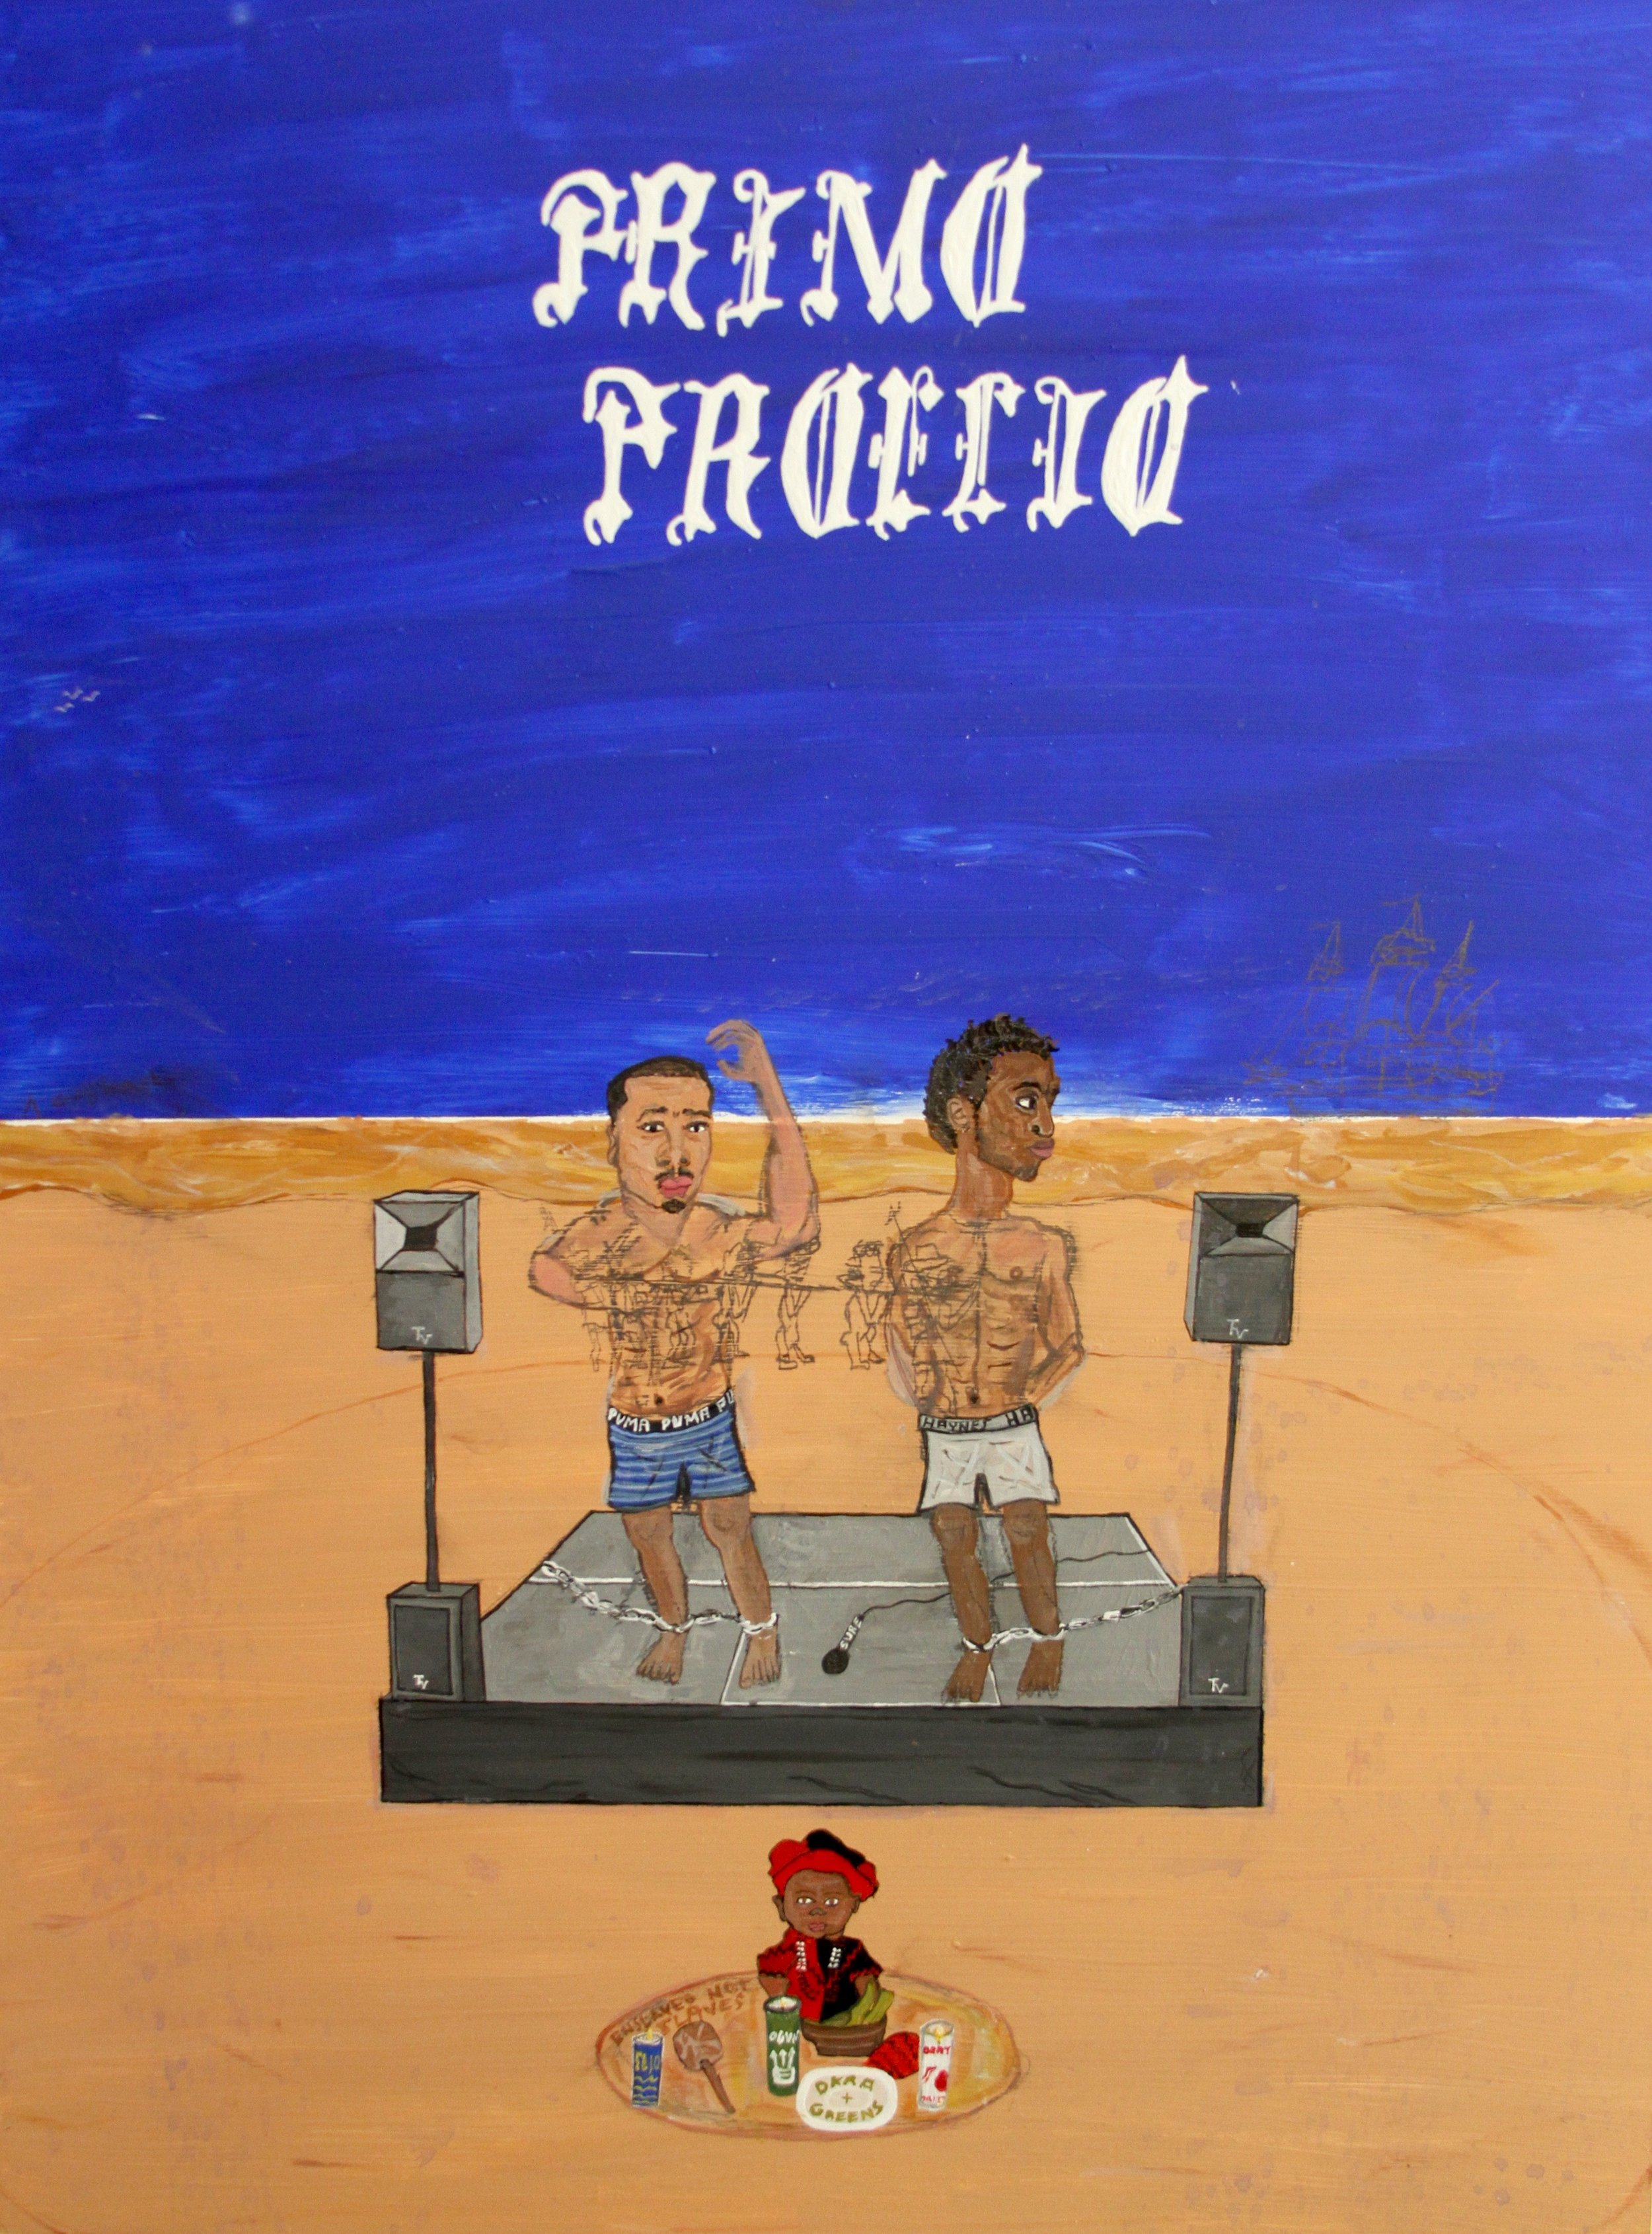 The First Battle (Primo Proelio) / 2017 / Acrylic, house paint and pencil on wood panel / 24 x 20 inches